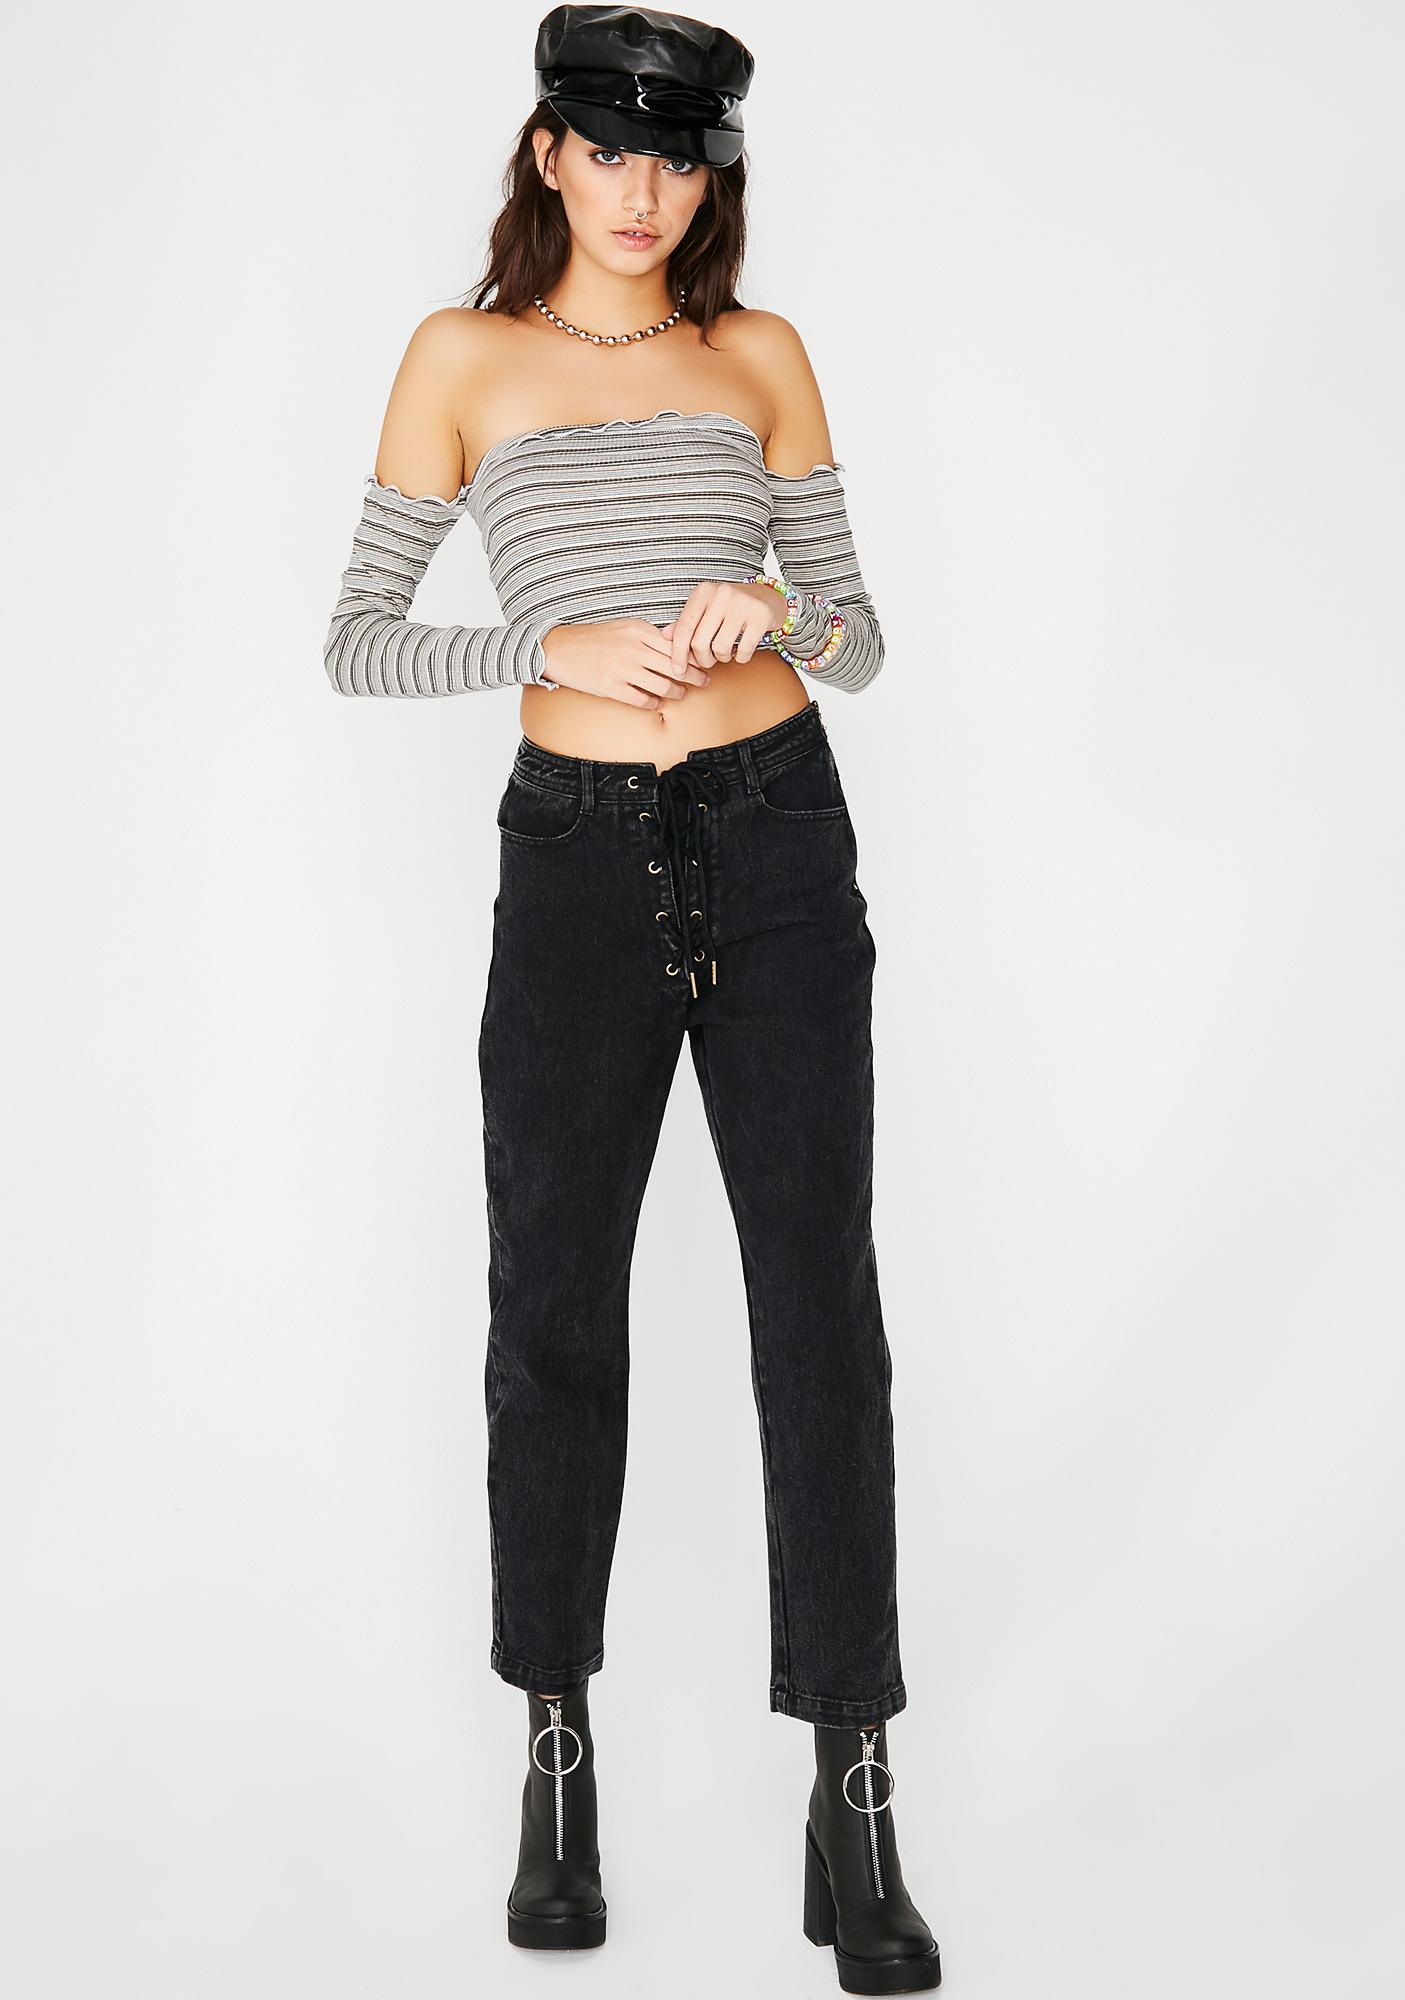 Feelin' Myself Crop Top